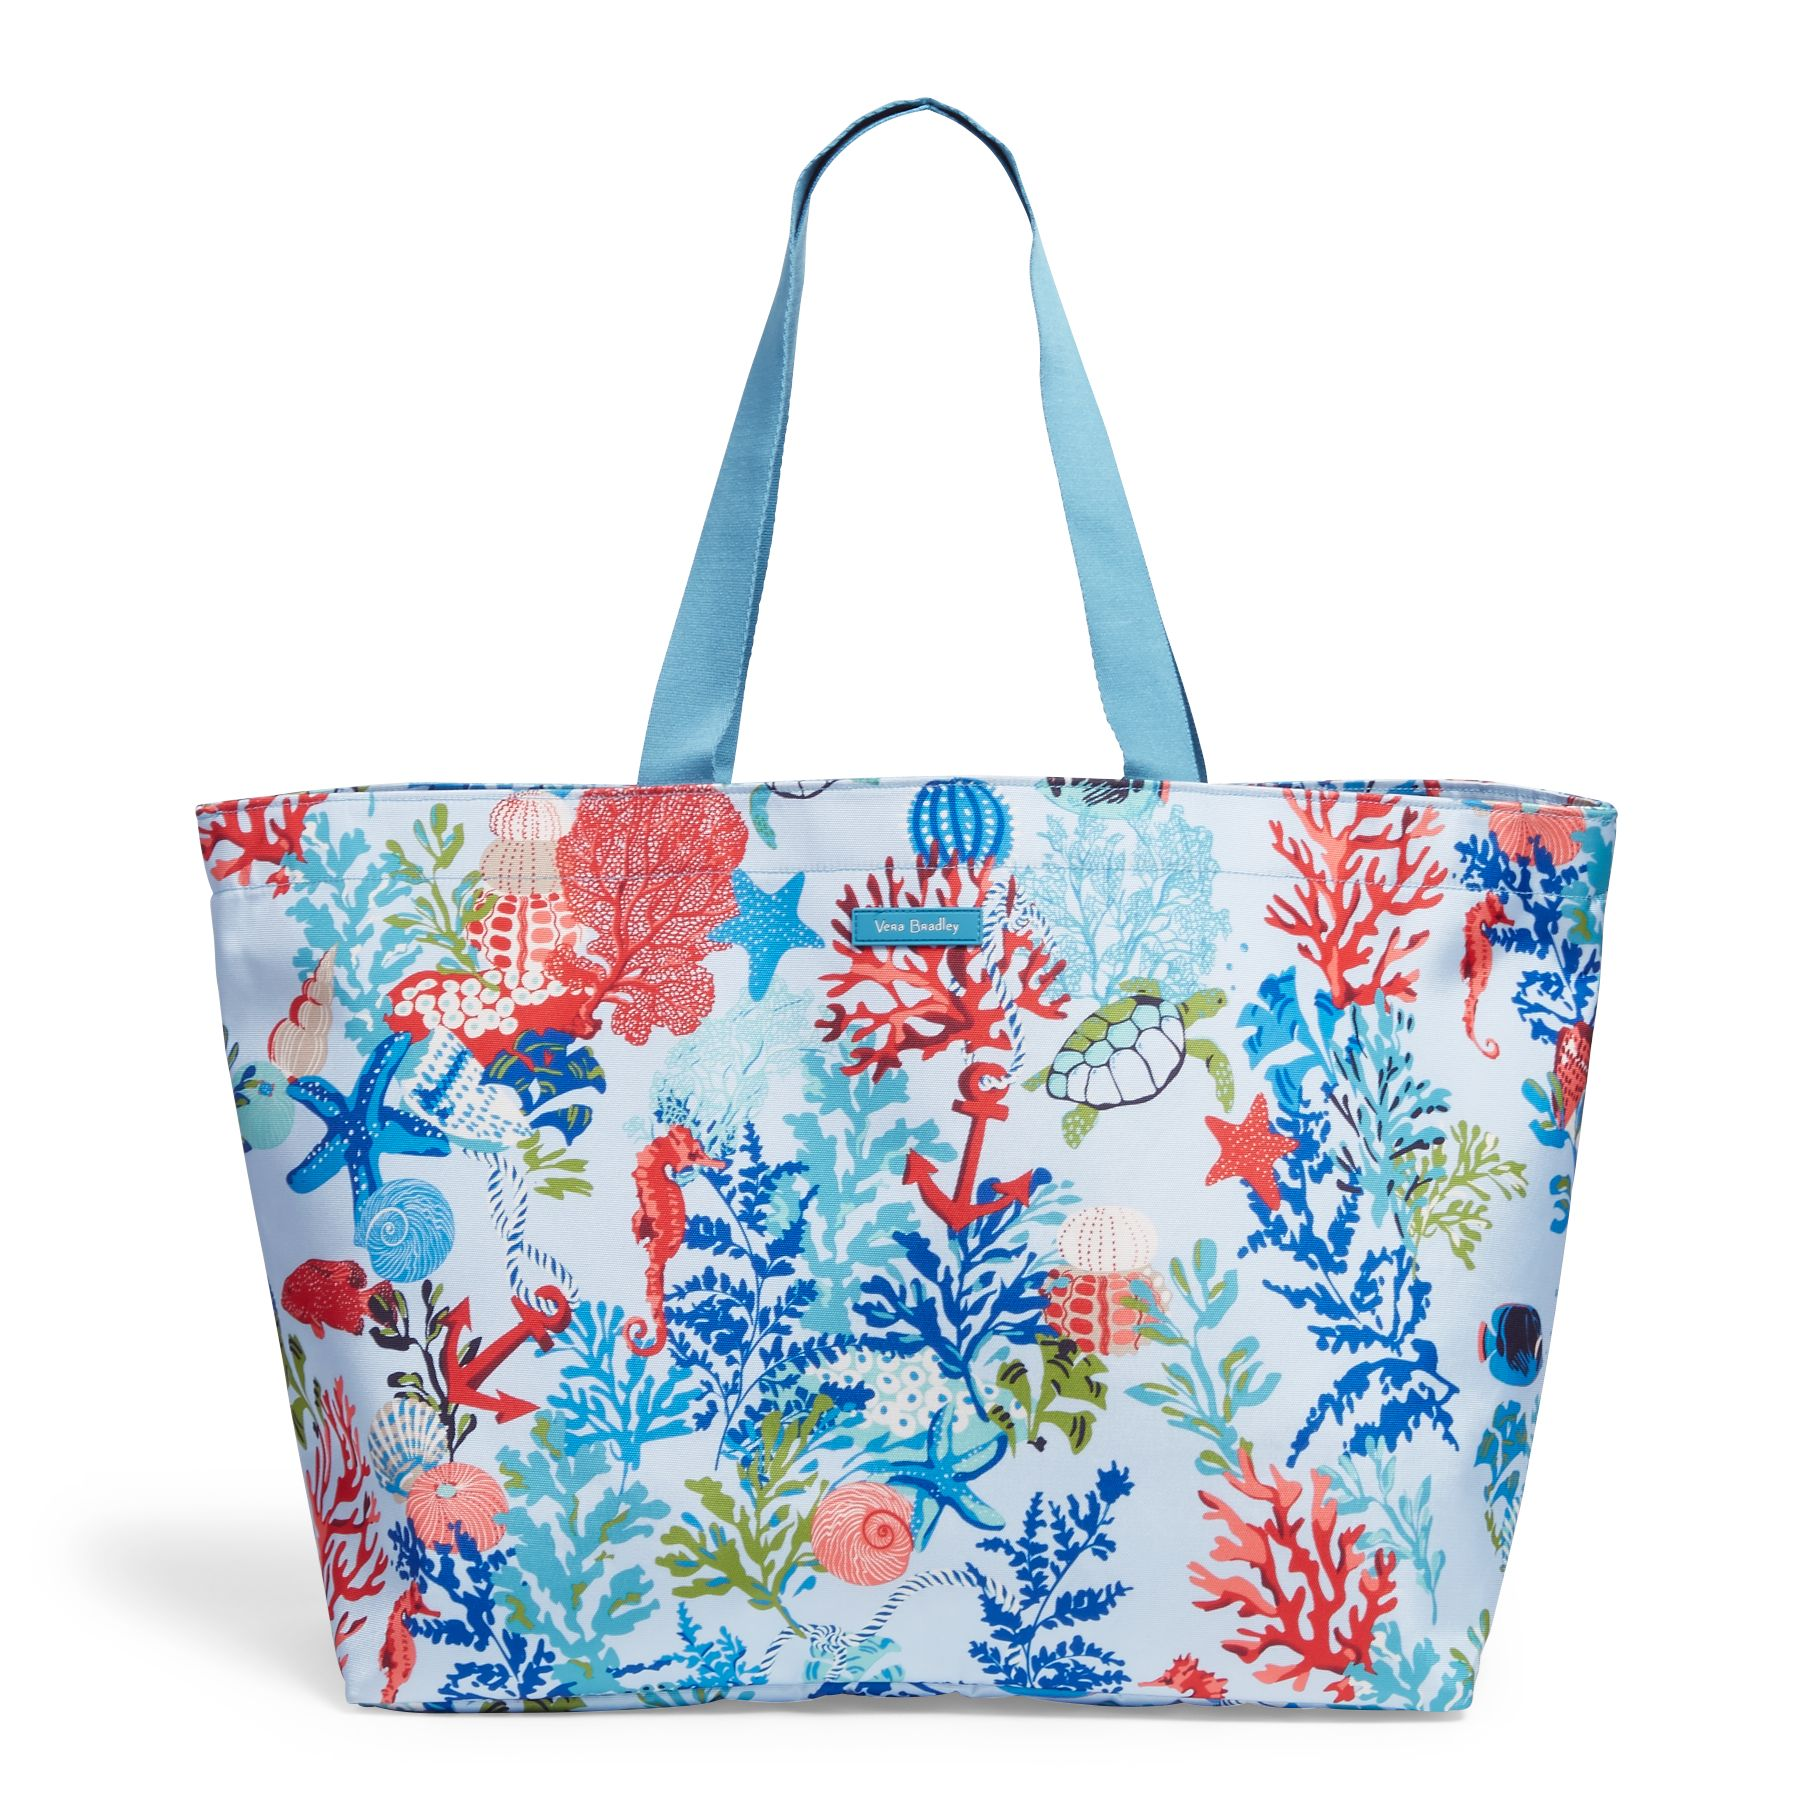 Large Family Tote - USA - photo#36